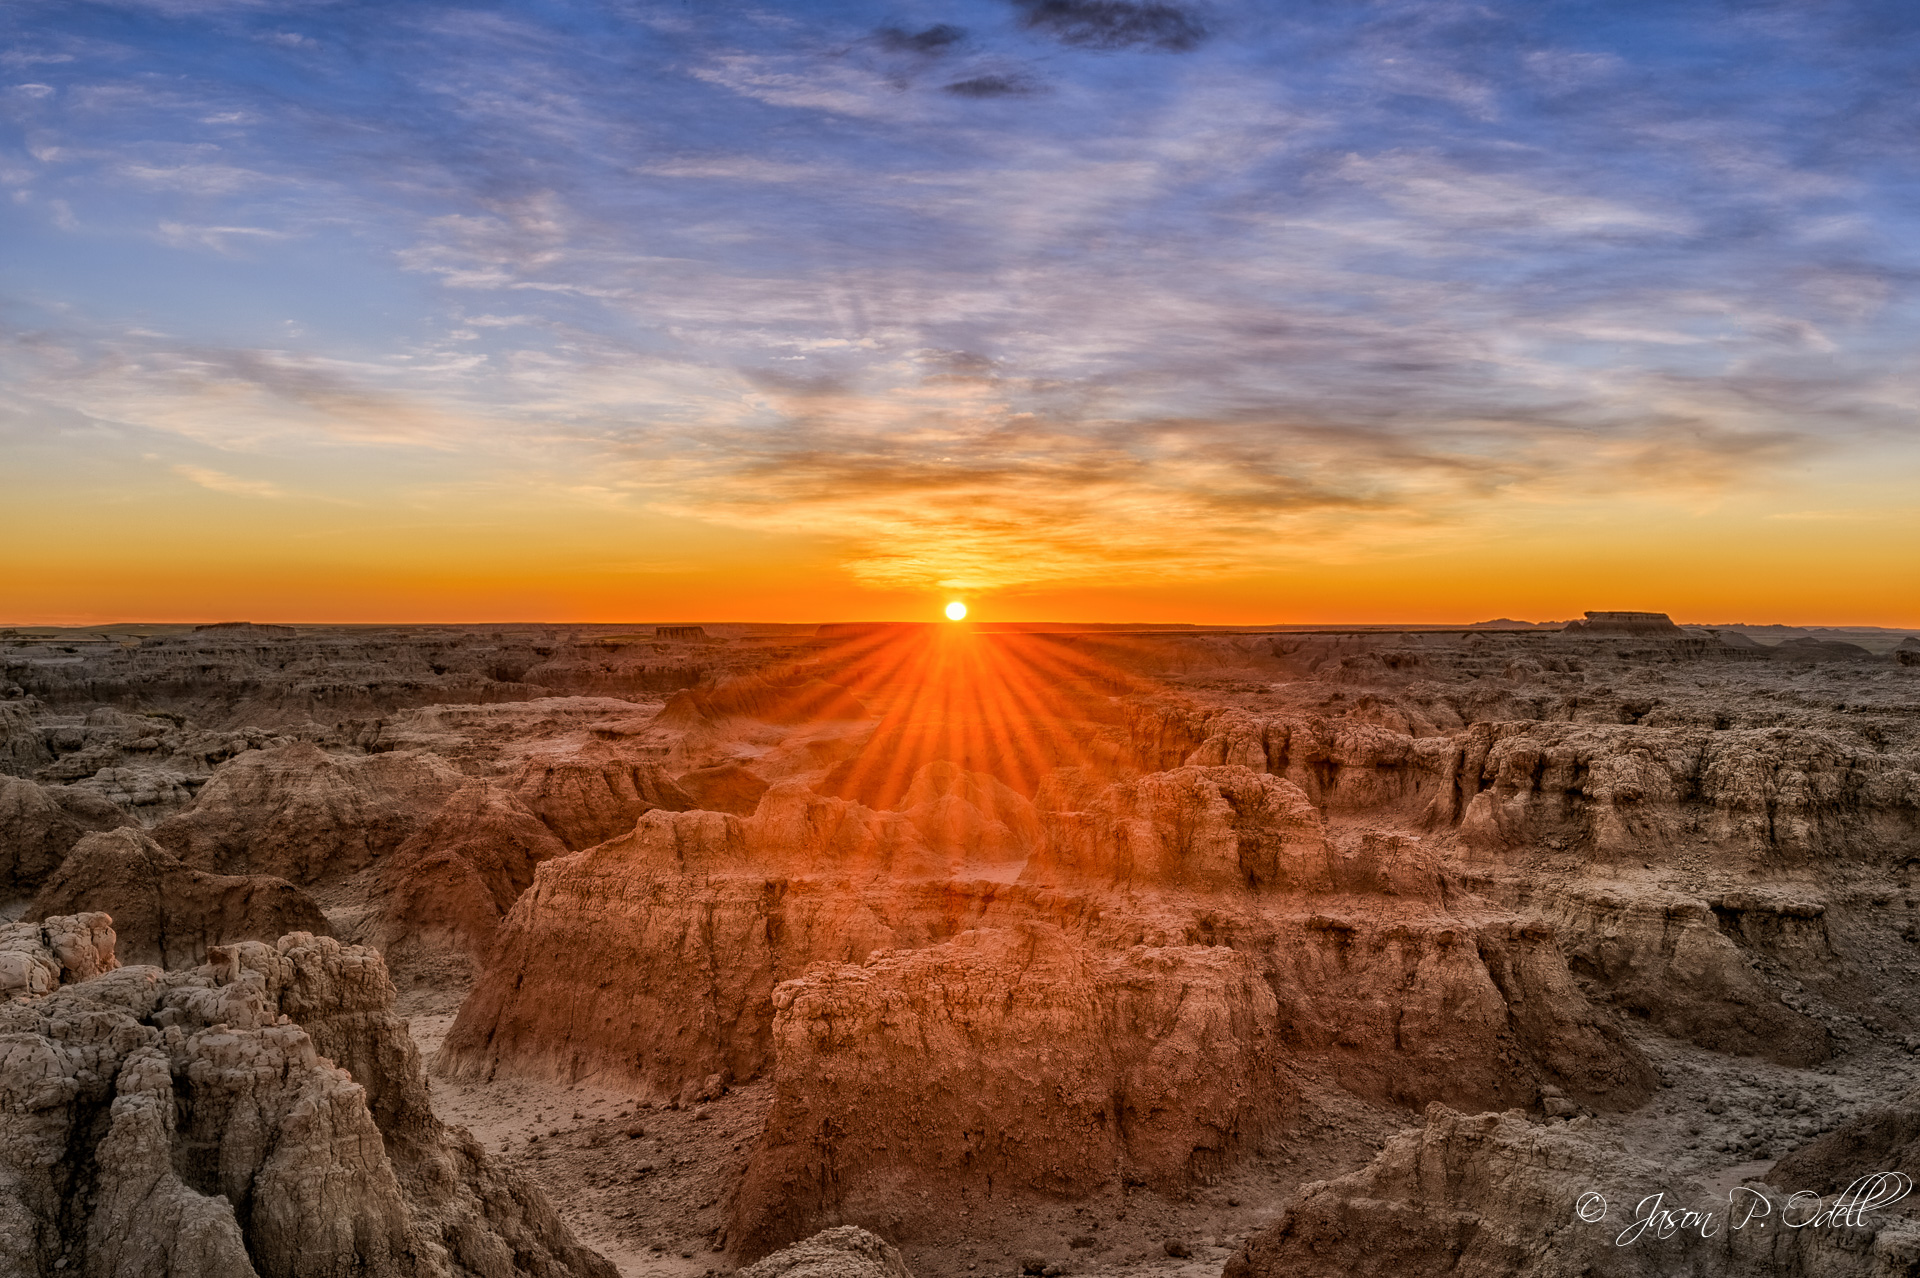 """The moment it hits you"" Sunrise over Badlands National Park, South Dakota."